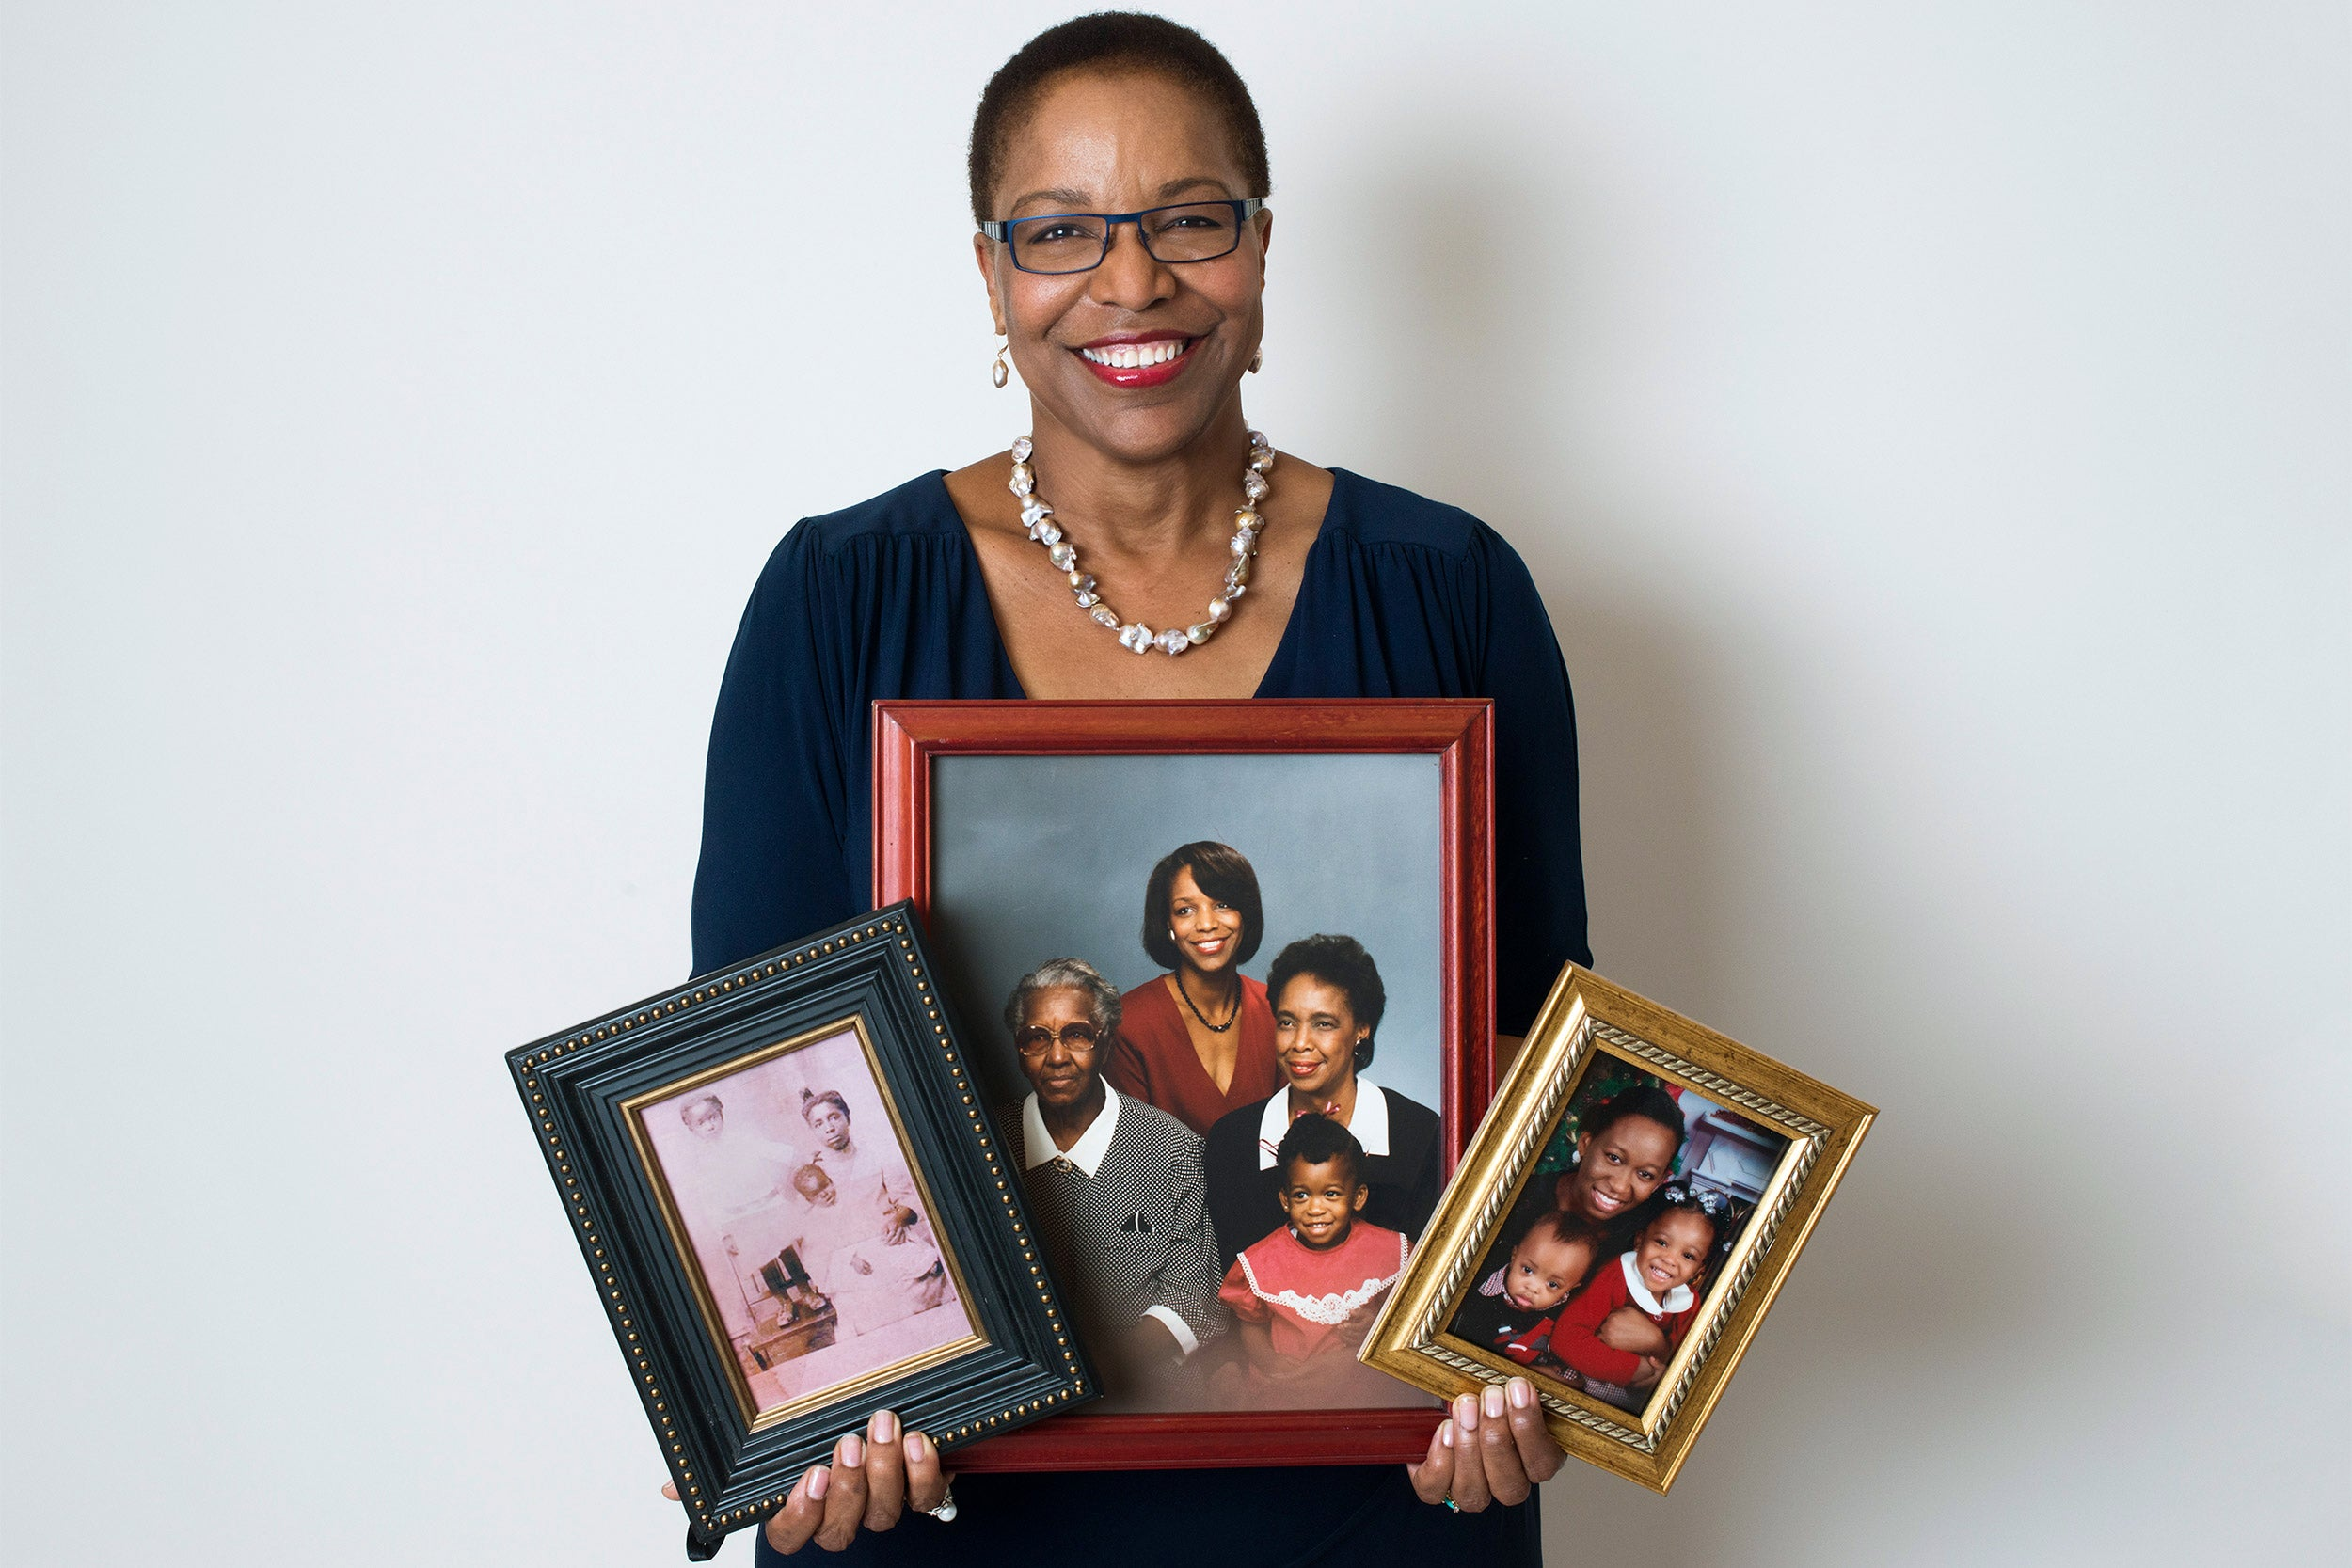 Joan Reede with photos of her family.